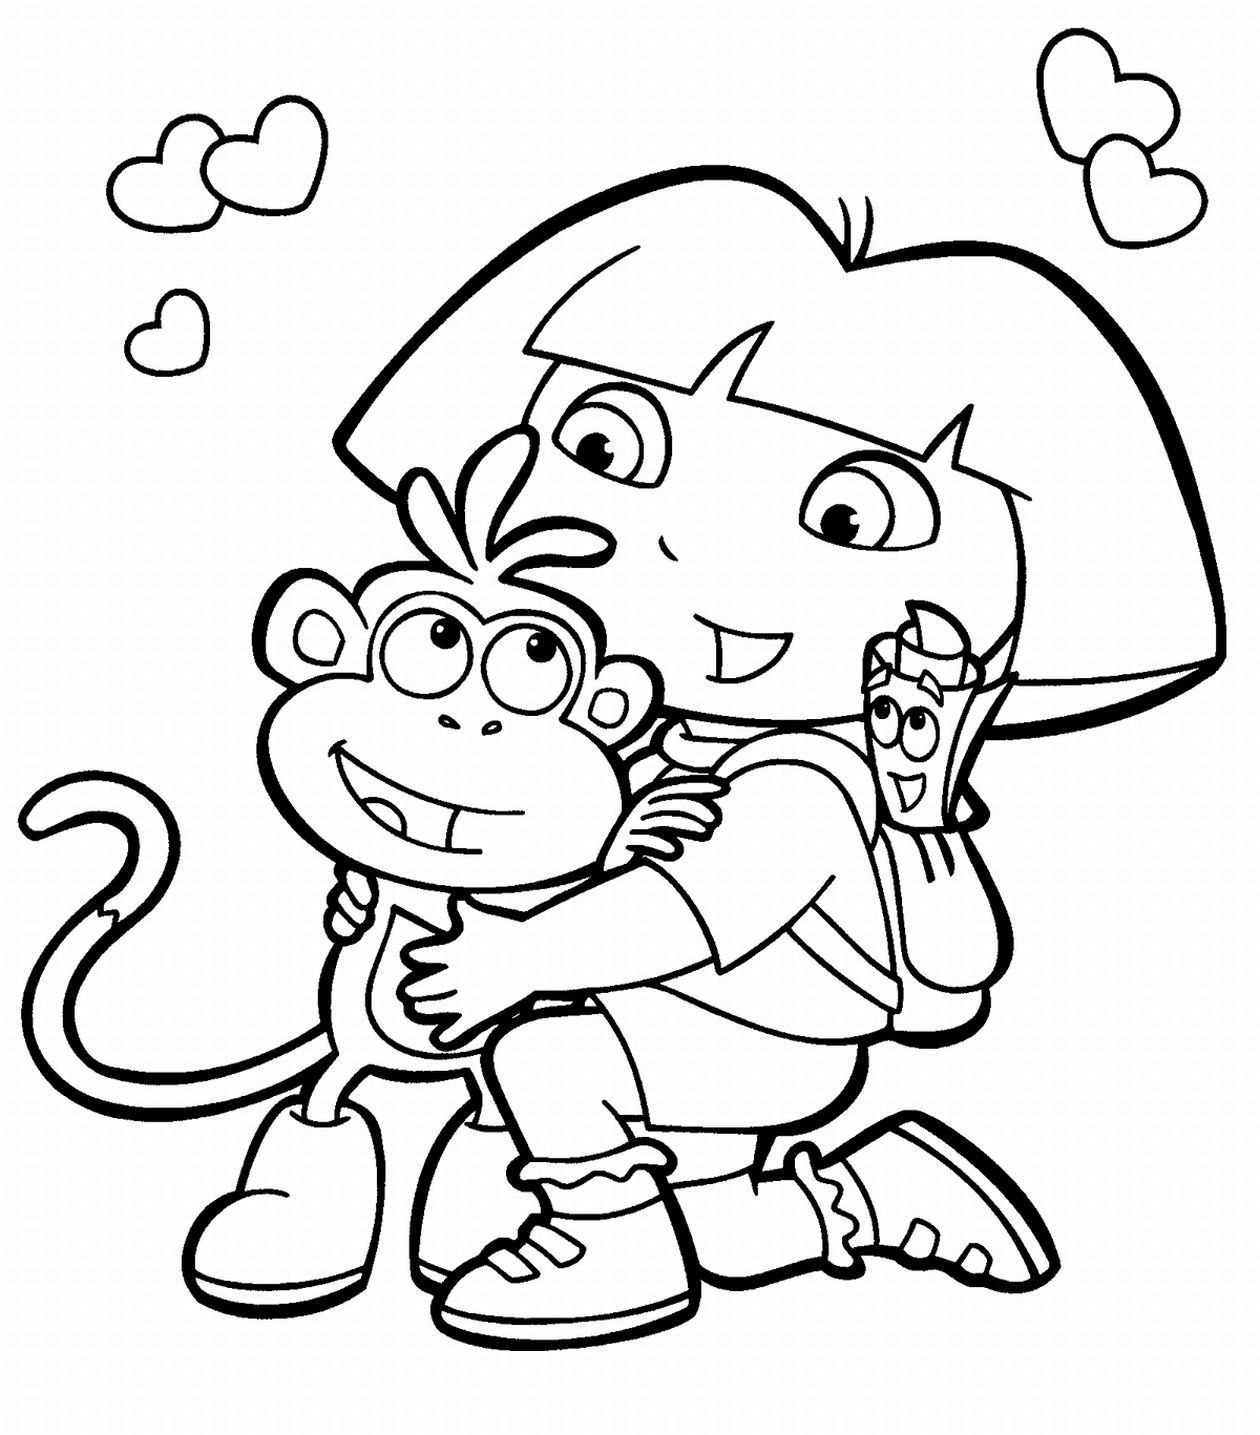 dora drawing pictures coloring dora dora pictures drawing